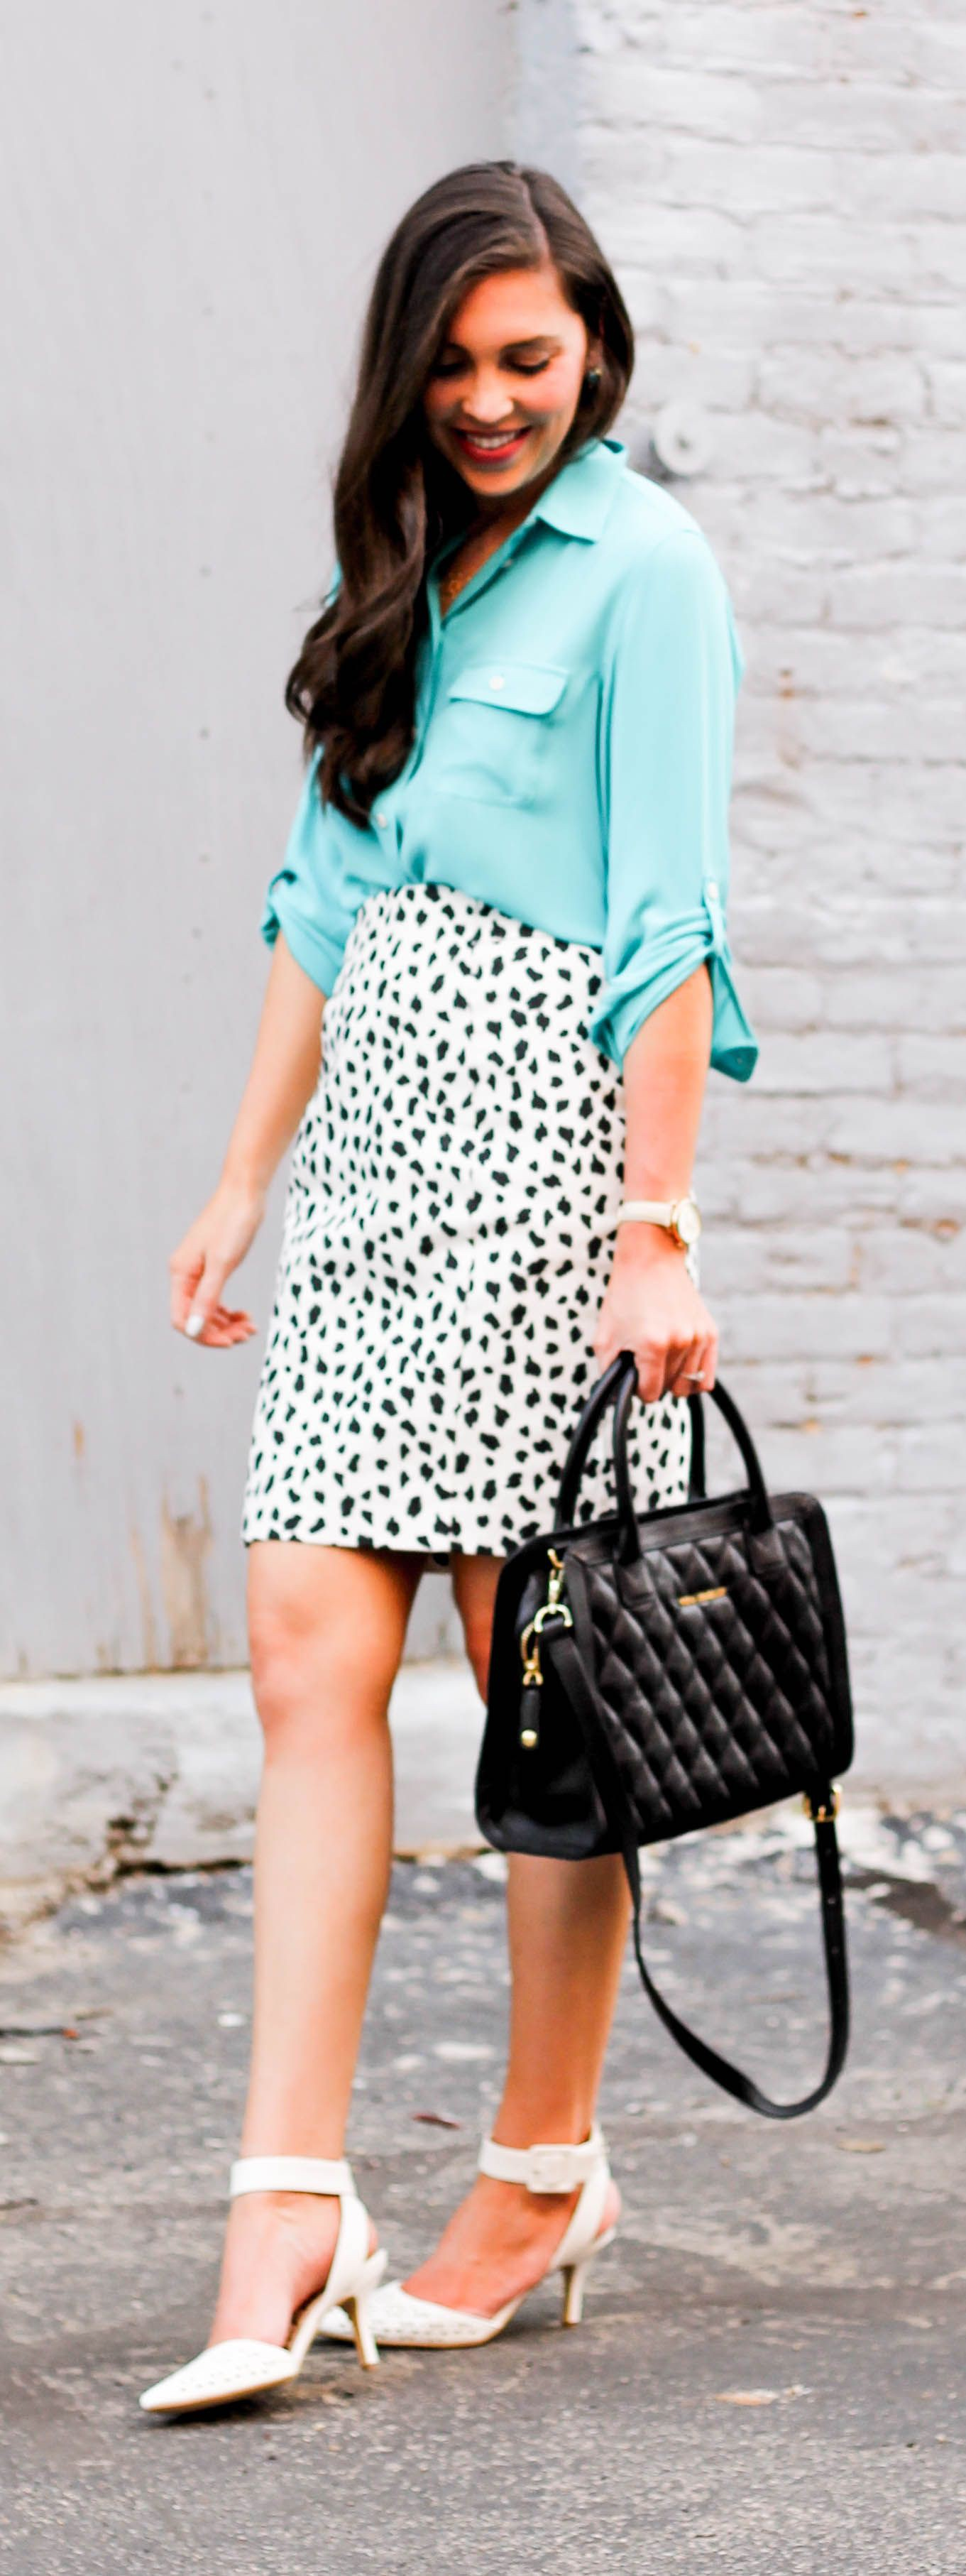 Turquoise and white outfit Stylevore with pencil skirt, polka dot, shorts